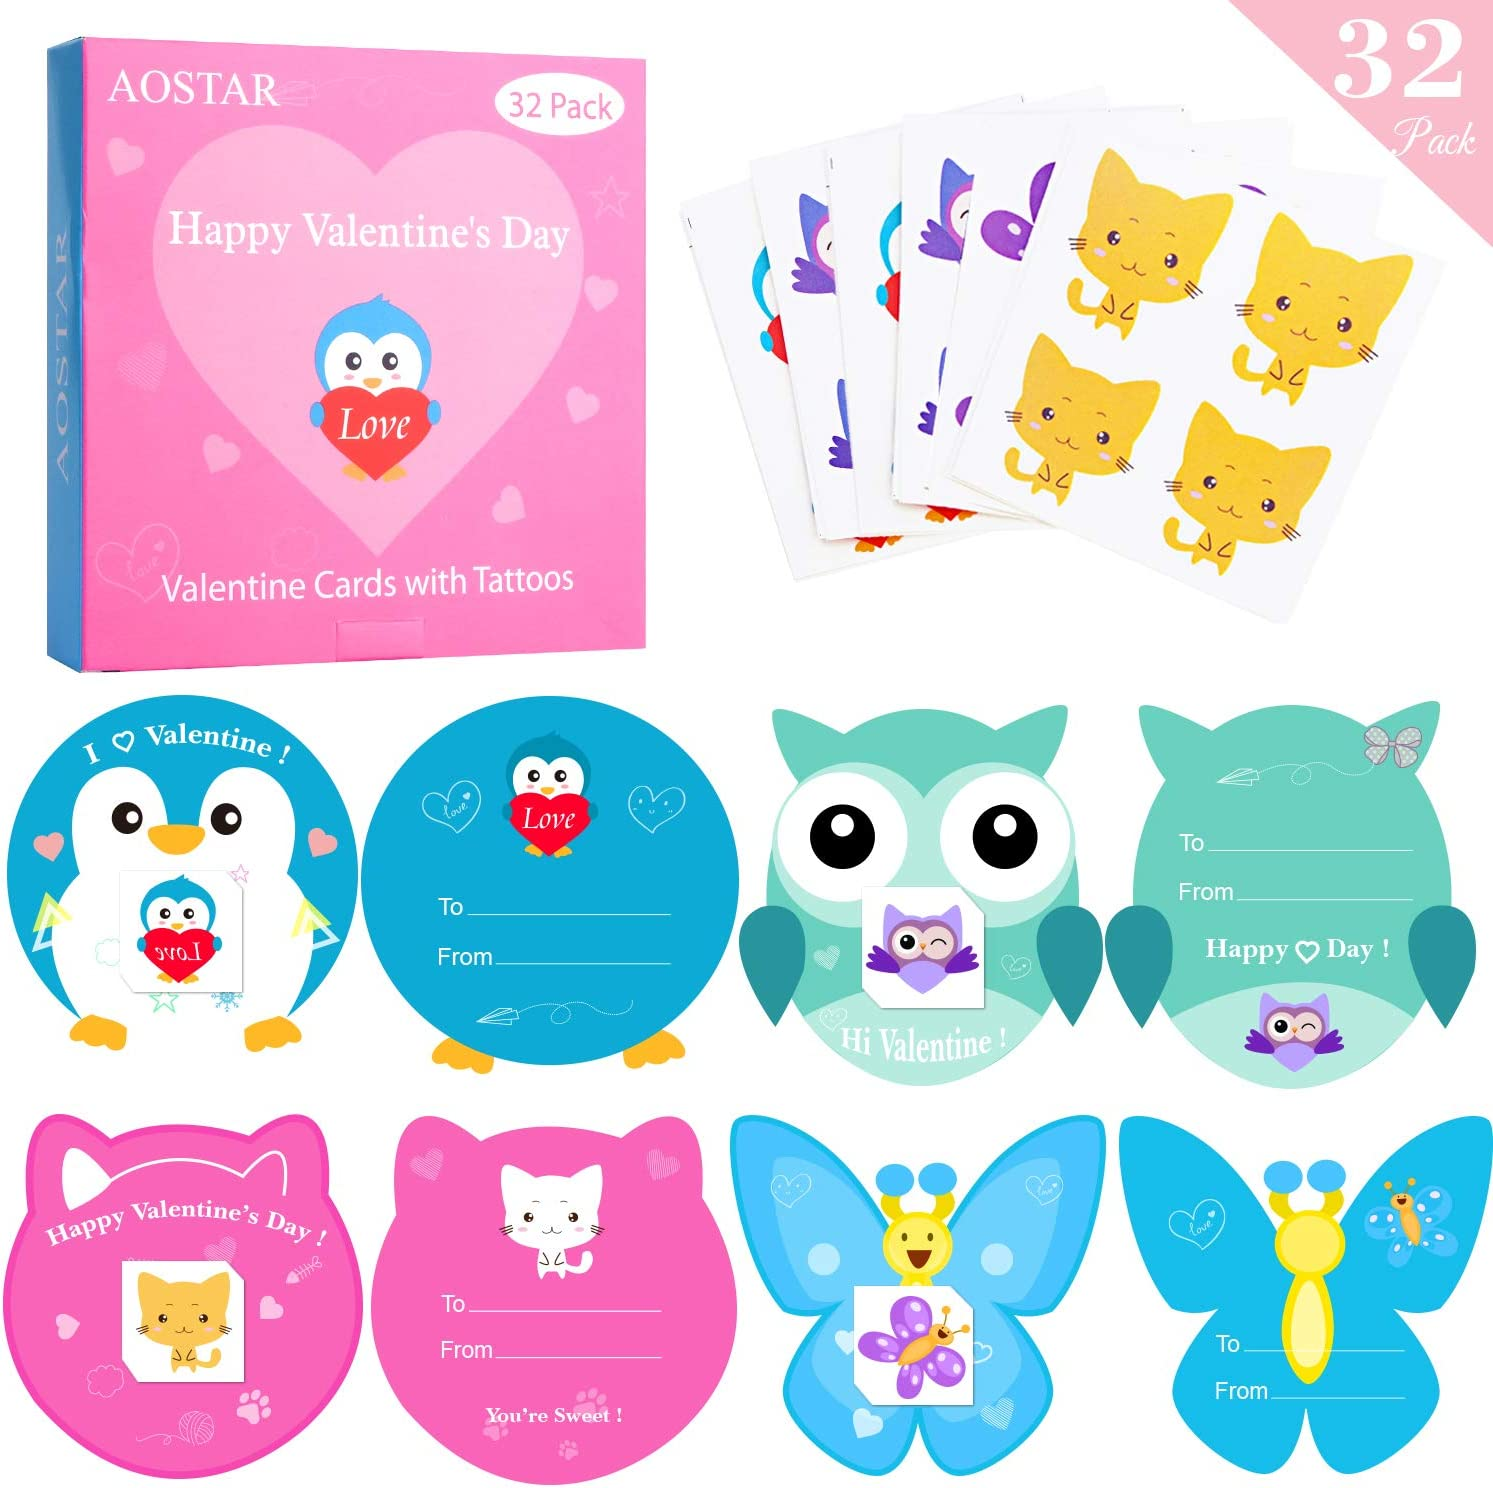 32 Set Kids Valentines Day Greeting Cards with Temporary Tattoos and Envelopes AOJOYS Valentines Cards for Kids Valentines Day Cards Pack for Classroom Exchange 32 Set Kids Valentine/'s Day Greeting Cards with Temporary Tattoos and Envelopes